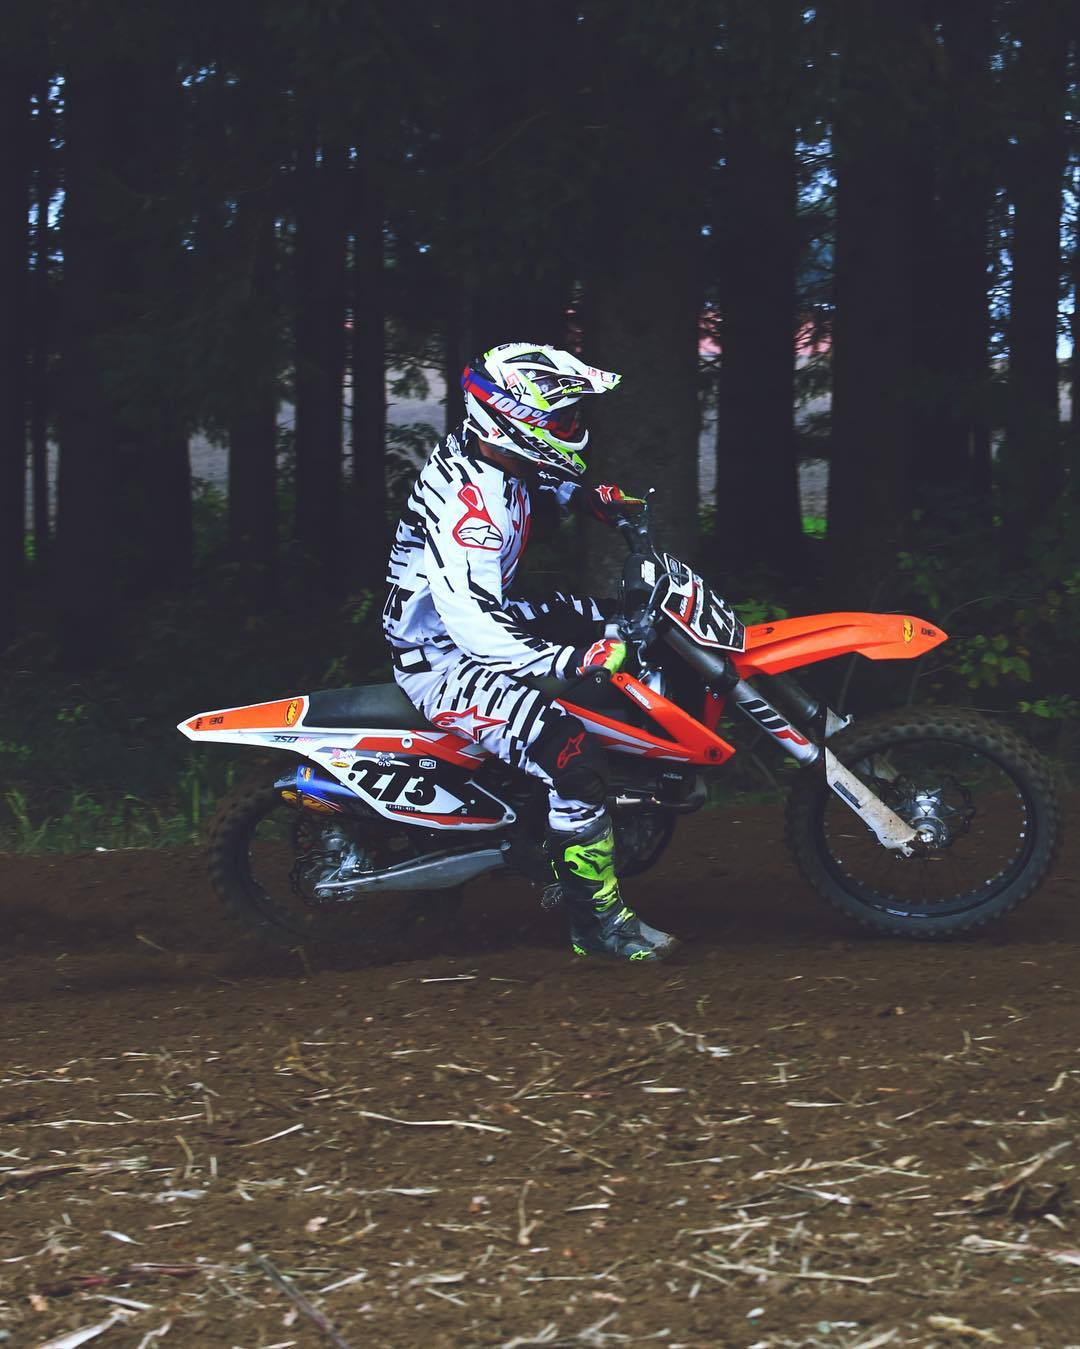 Starting to get excited for @tschugg23 's Invite only race this weekend! Not sure if the #300EXC will be as good for it as the #350SXF I had last year but can't wait to race anyway! #ktm #moto @fmf73 @ride100percent 📷 @speedyvelocity2000